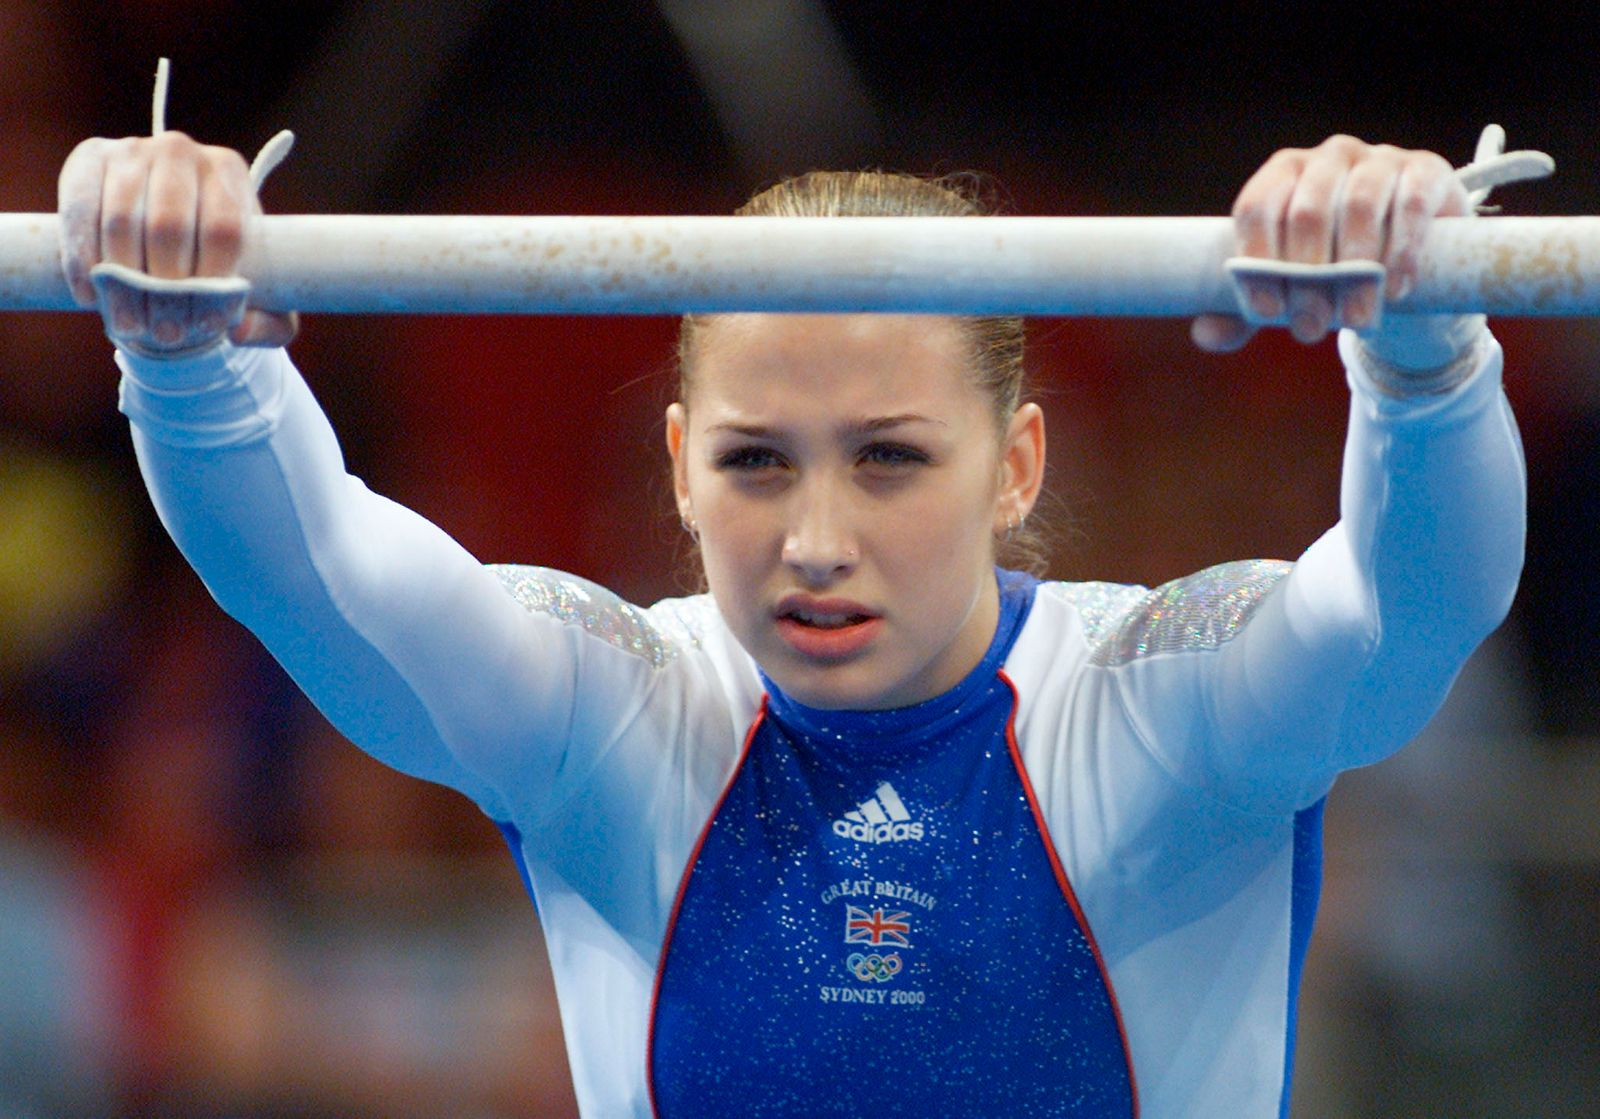 GREAT BRITAIN GYMNAST LISA MASON LOOKS OUT FROM UNDER UNEVEN BAR.